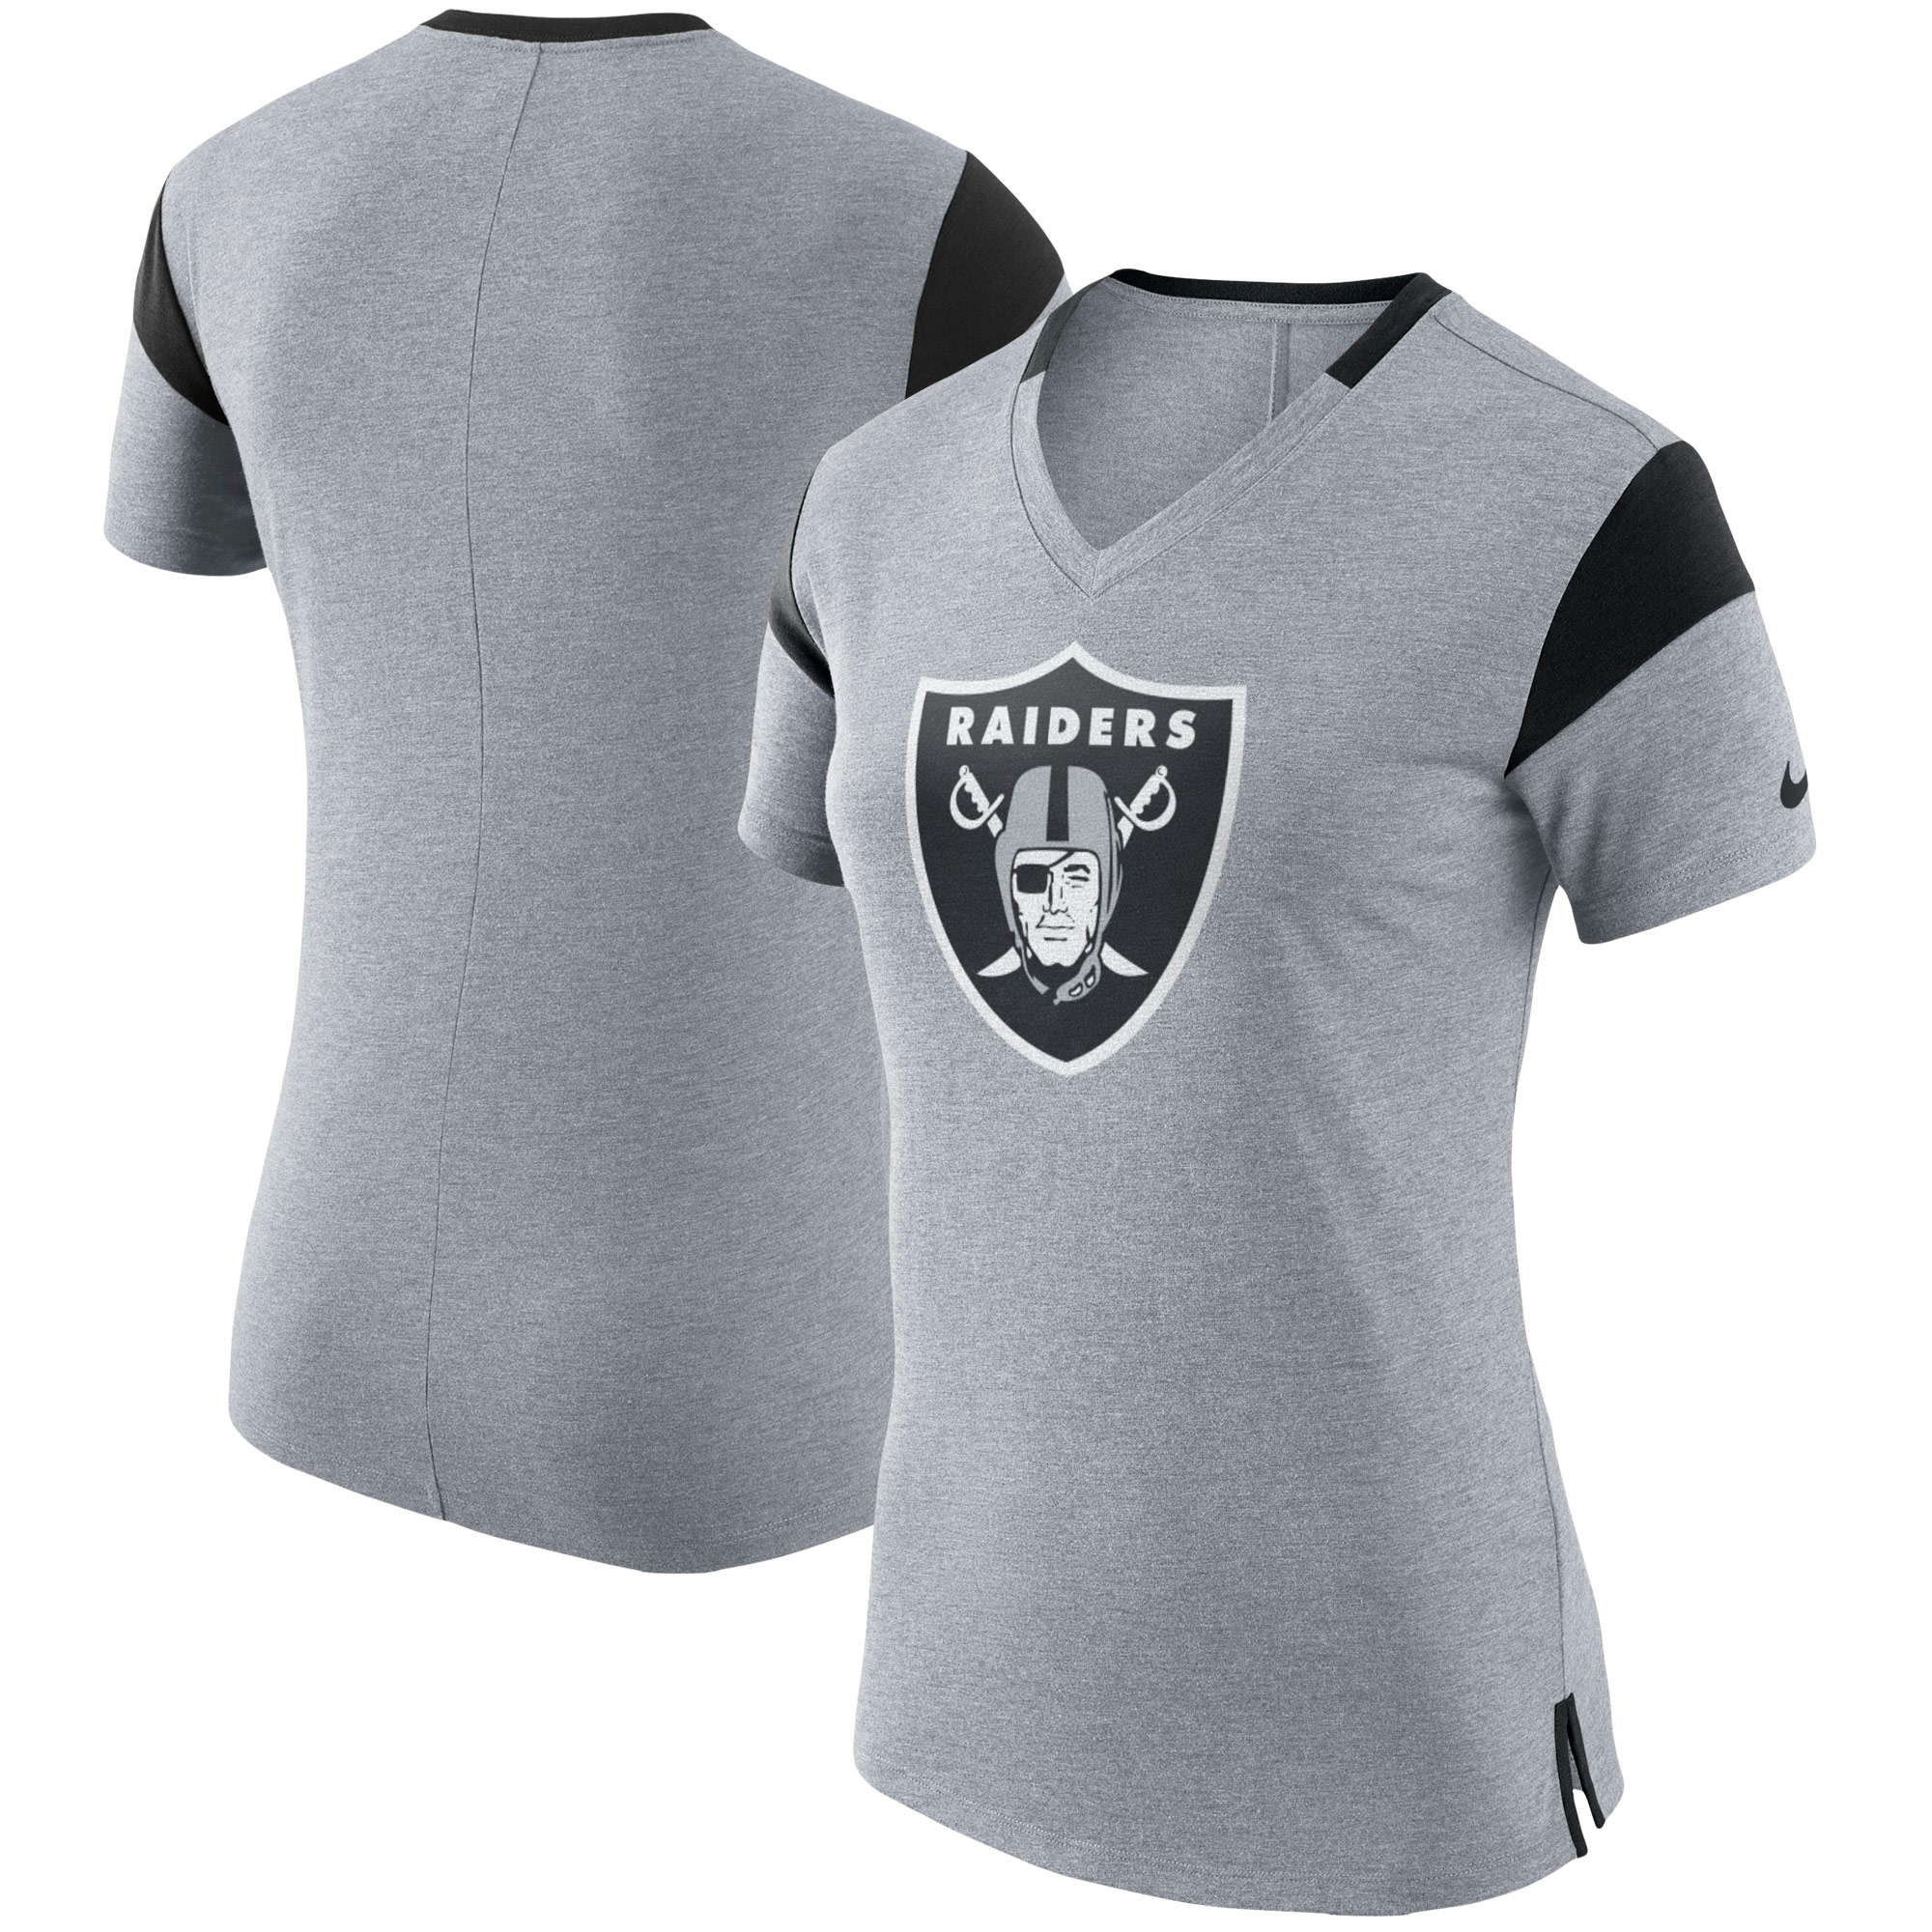 Oakland Raiders Nike Women's Fan V-Neck T-Shirt - Heathered Charcoal